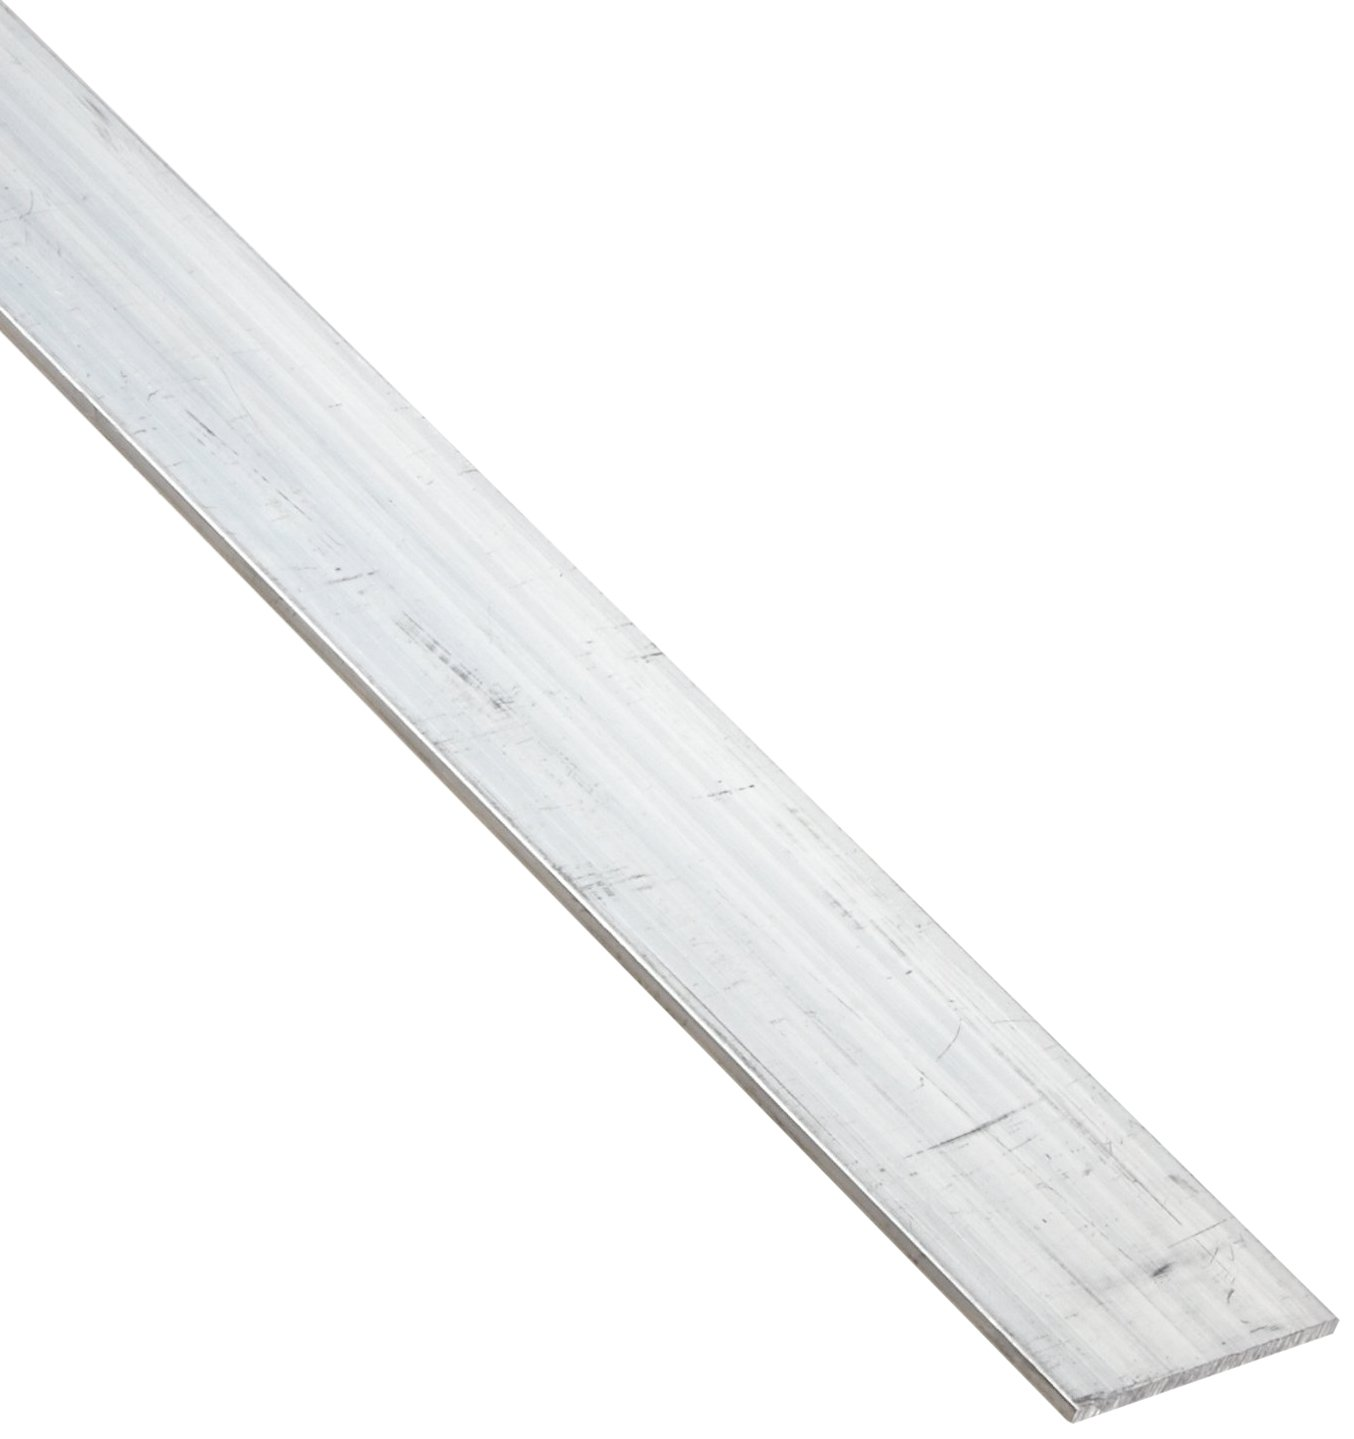 Unpolished Finish Mill 24 Length 6061 Aluminum Rectangular Bar Extruded 3//4 Width 1//8 Thickness T6511 Temper ASTM B221